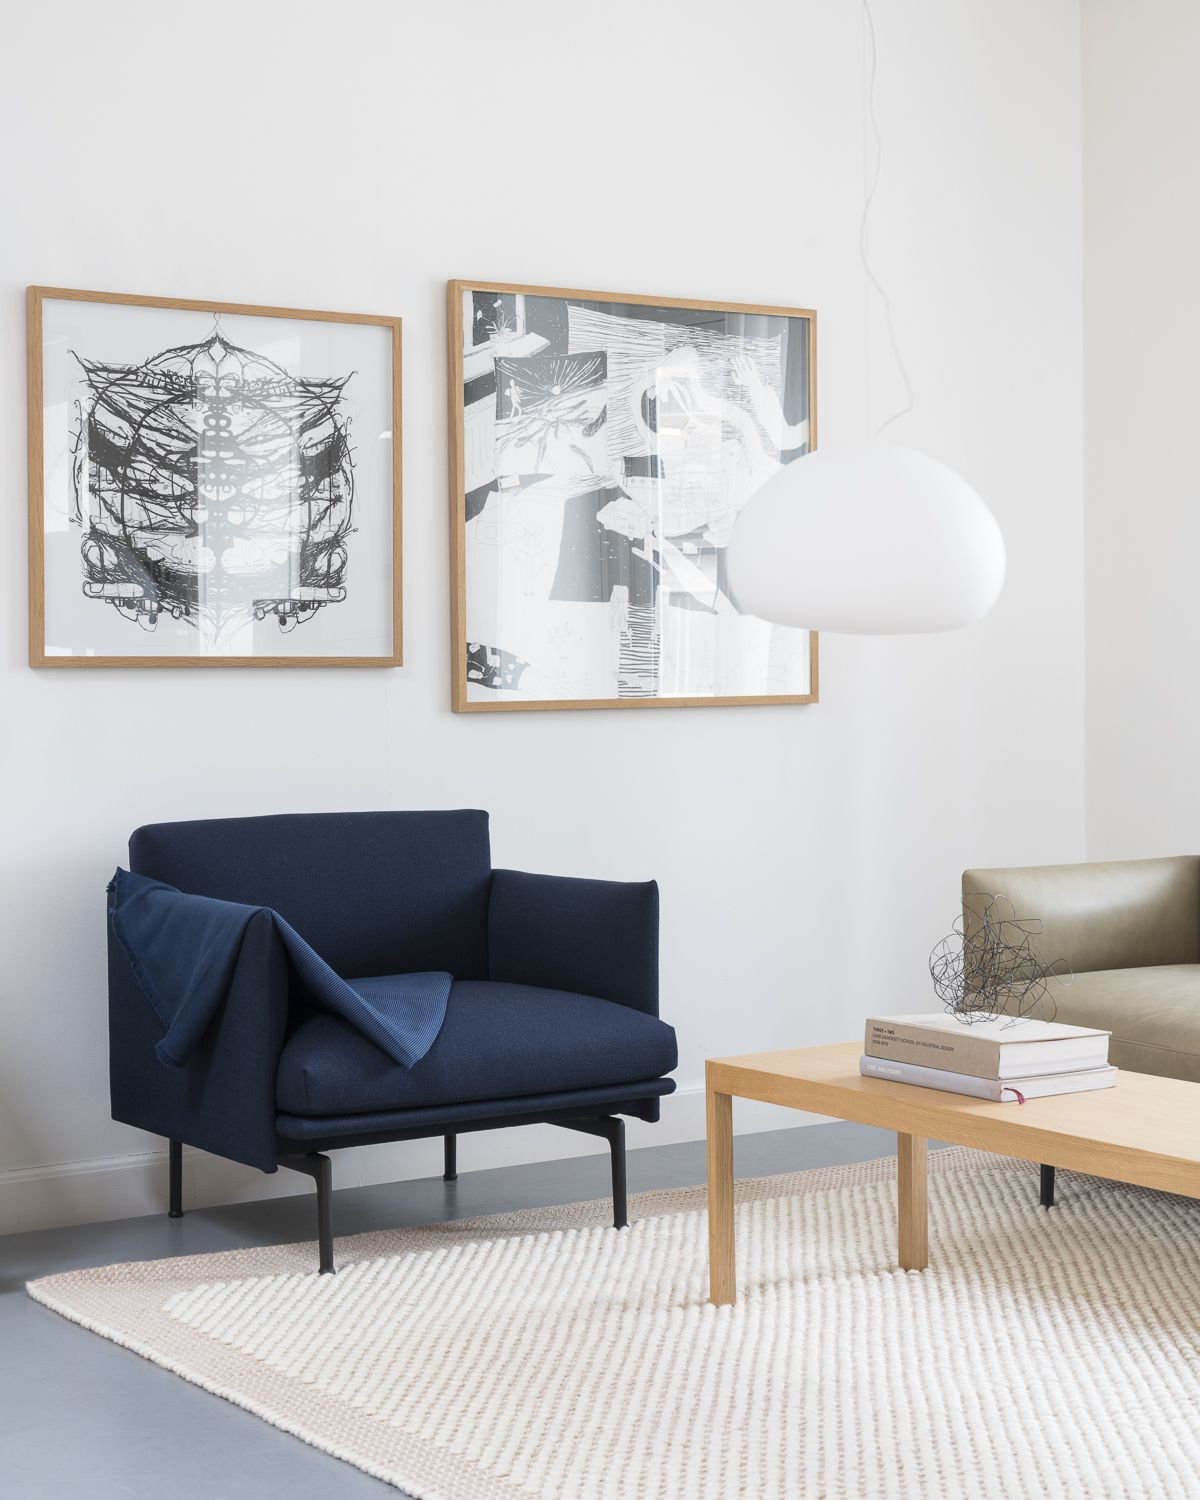 Scandinavian interior inspiration from muuto the outline series adds new perspectives to the classic scandinavian design sofas of the 1960s marrying the